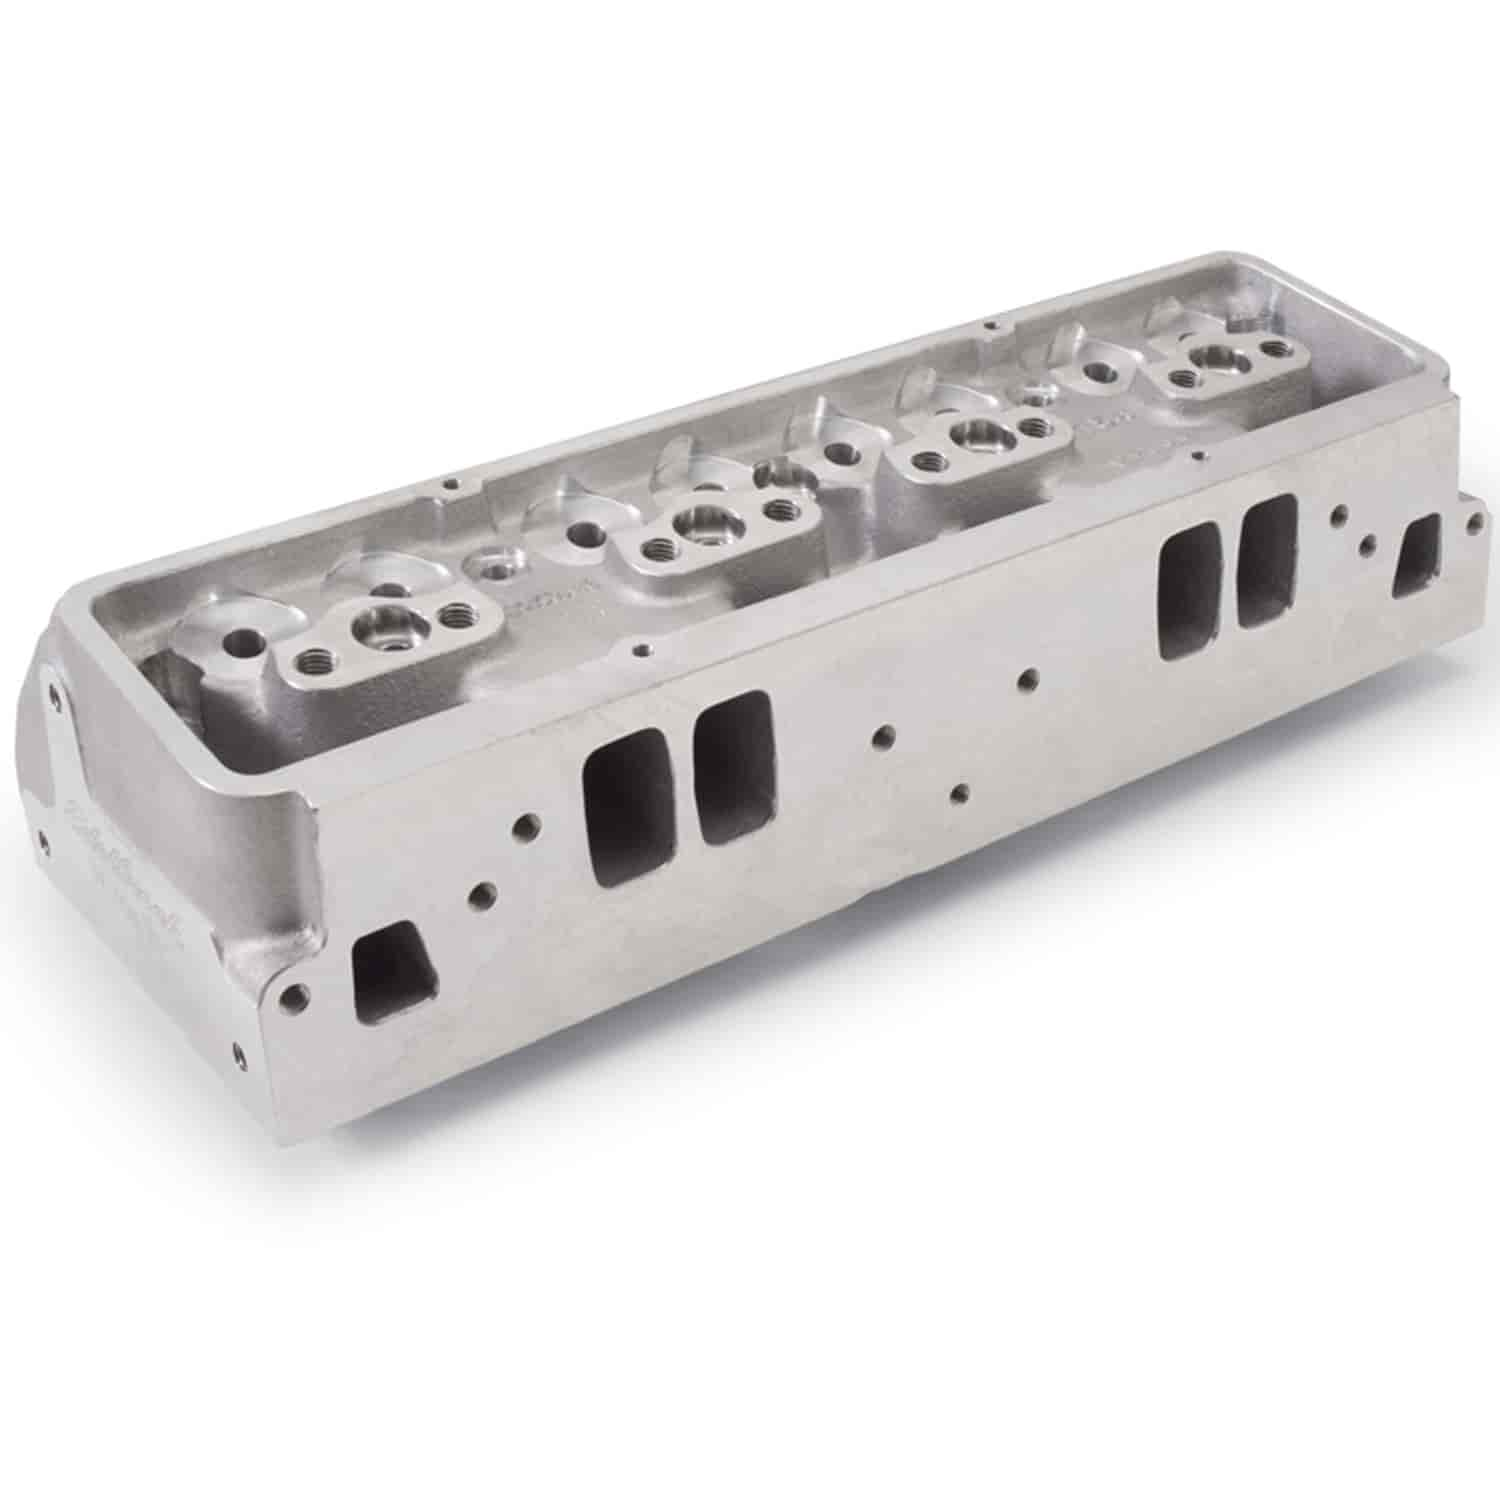 Edelbrock 775469 - Edelbrock Pro-Port Cylinder Heads for Small Block Chevy